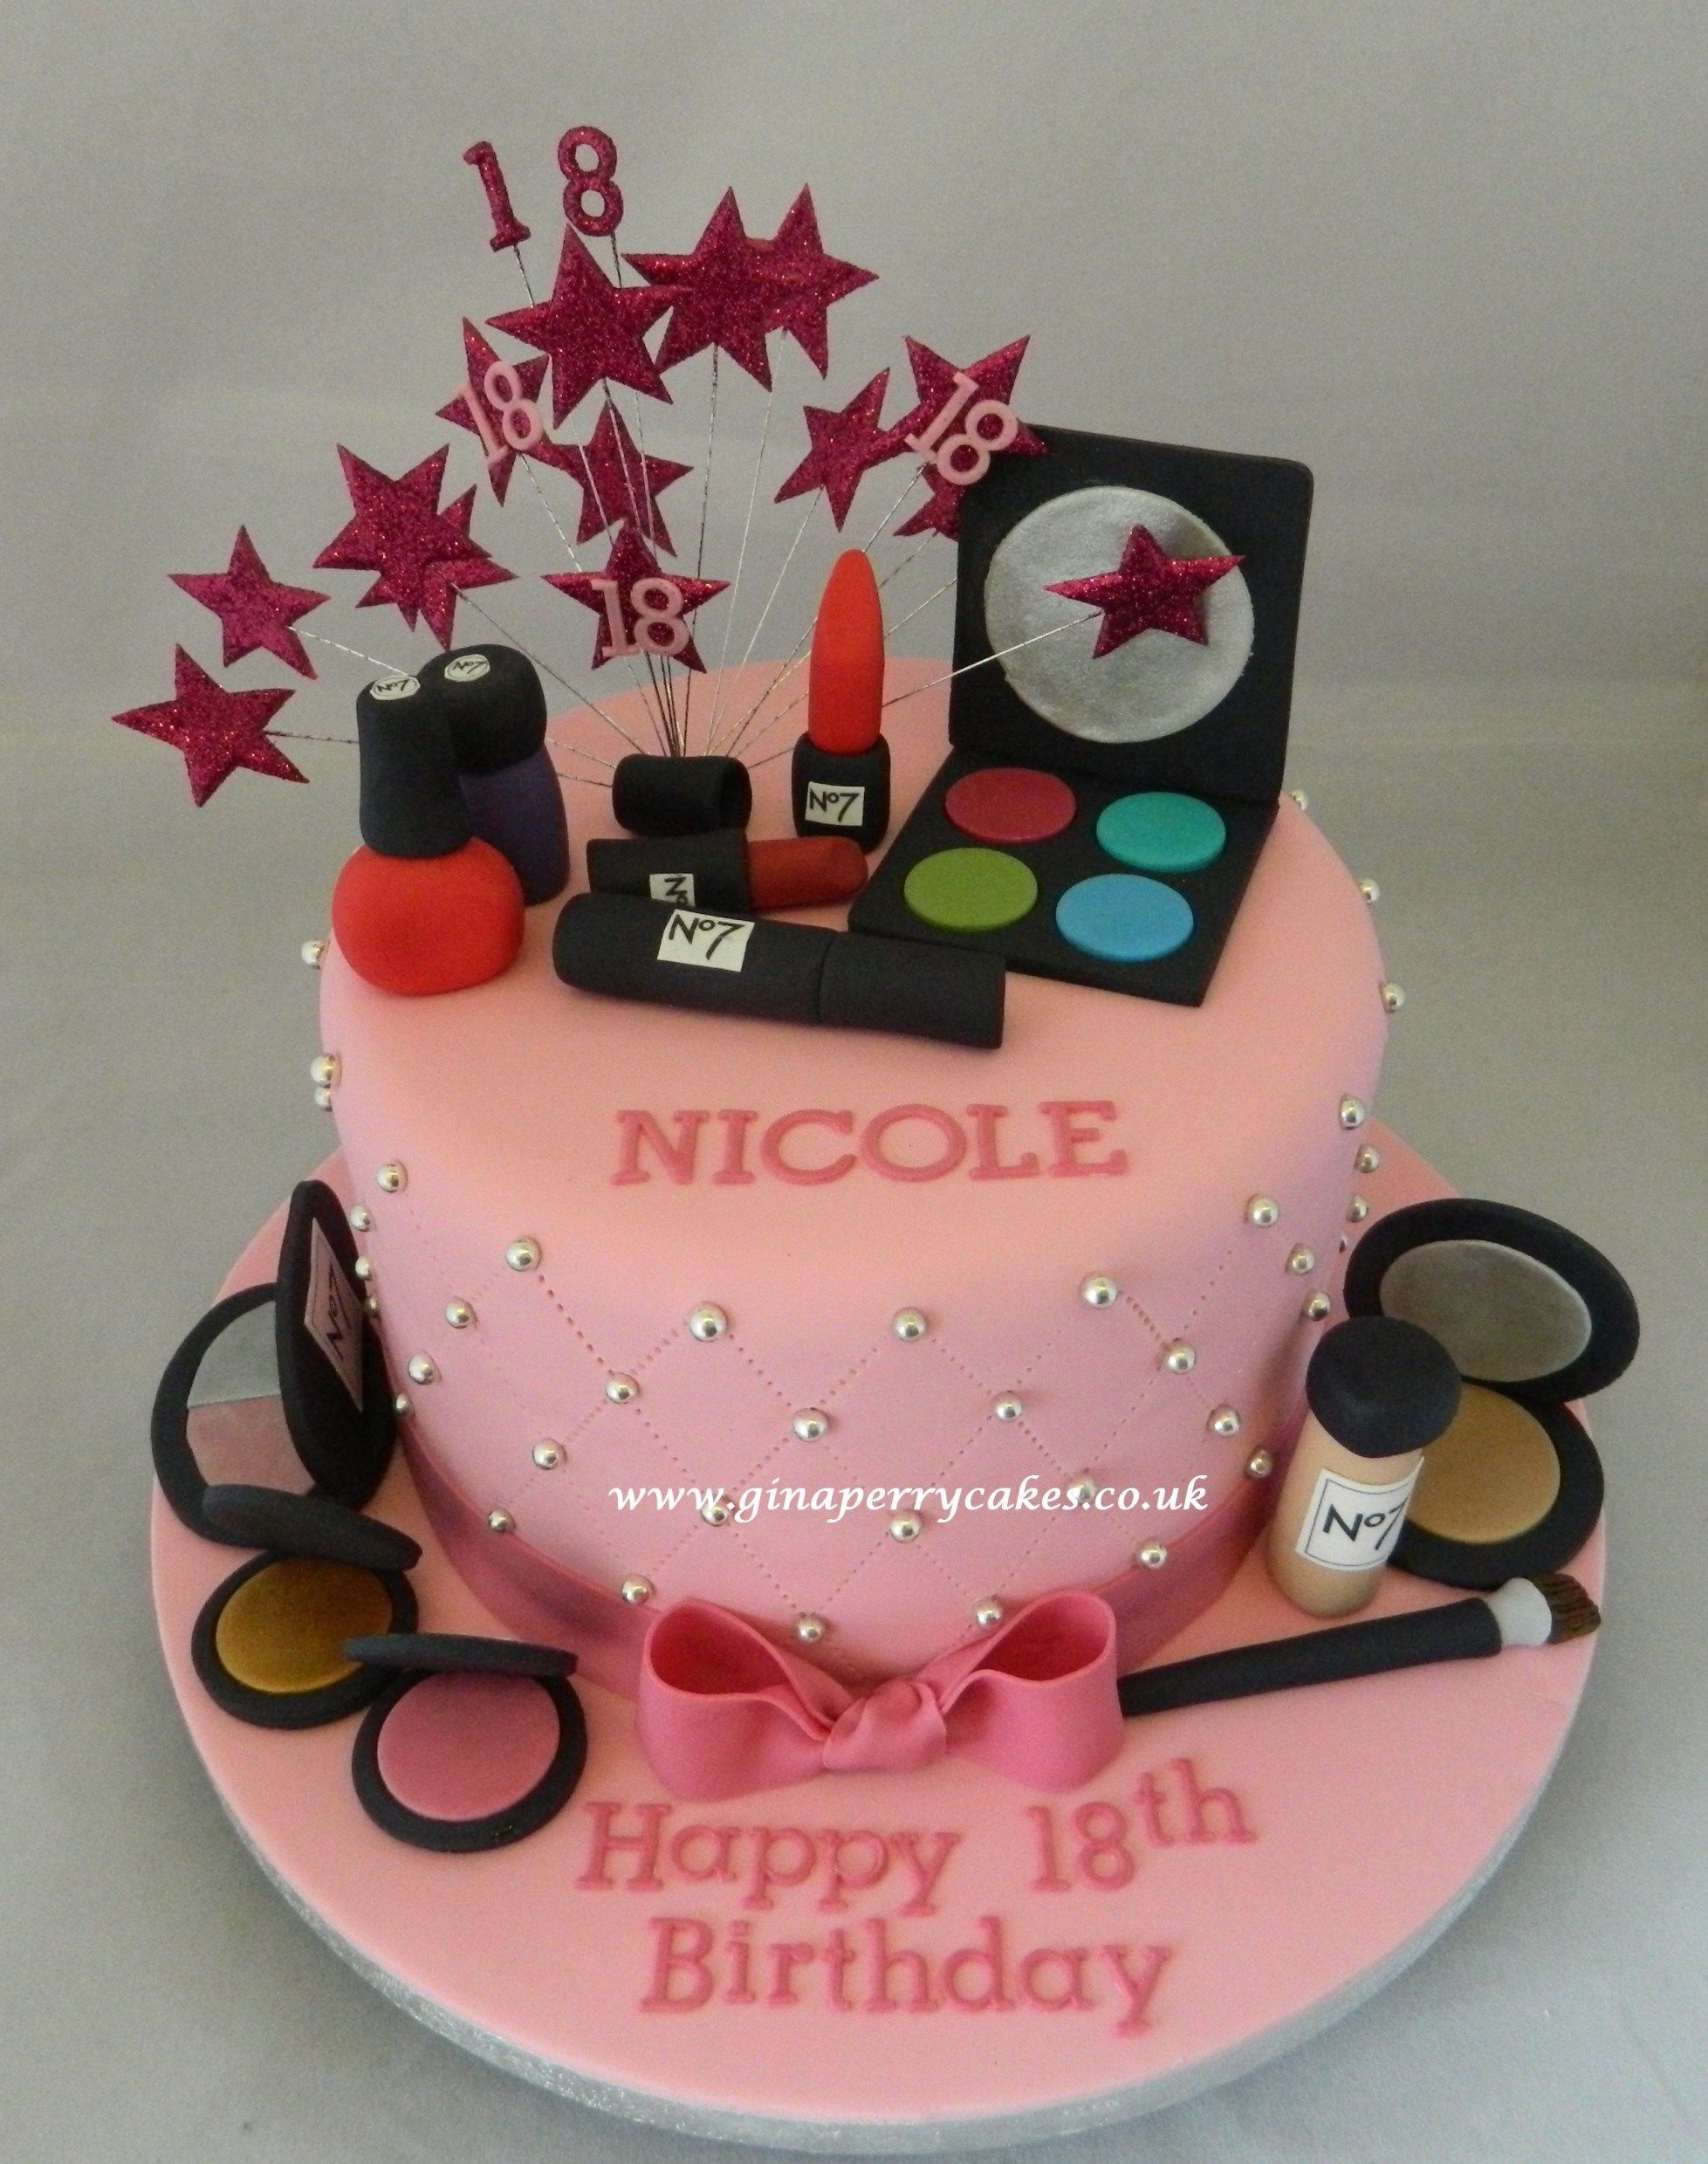 Makeup Birthday Cake 18th Birthday Cake Make Up Theme Quinceaera